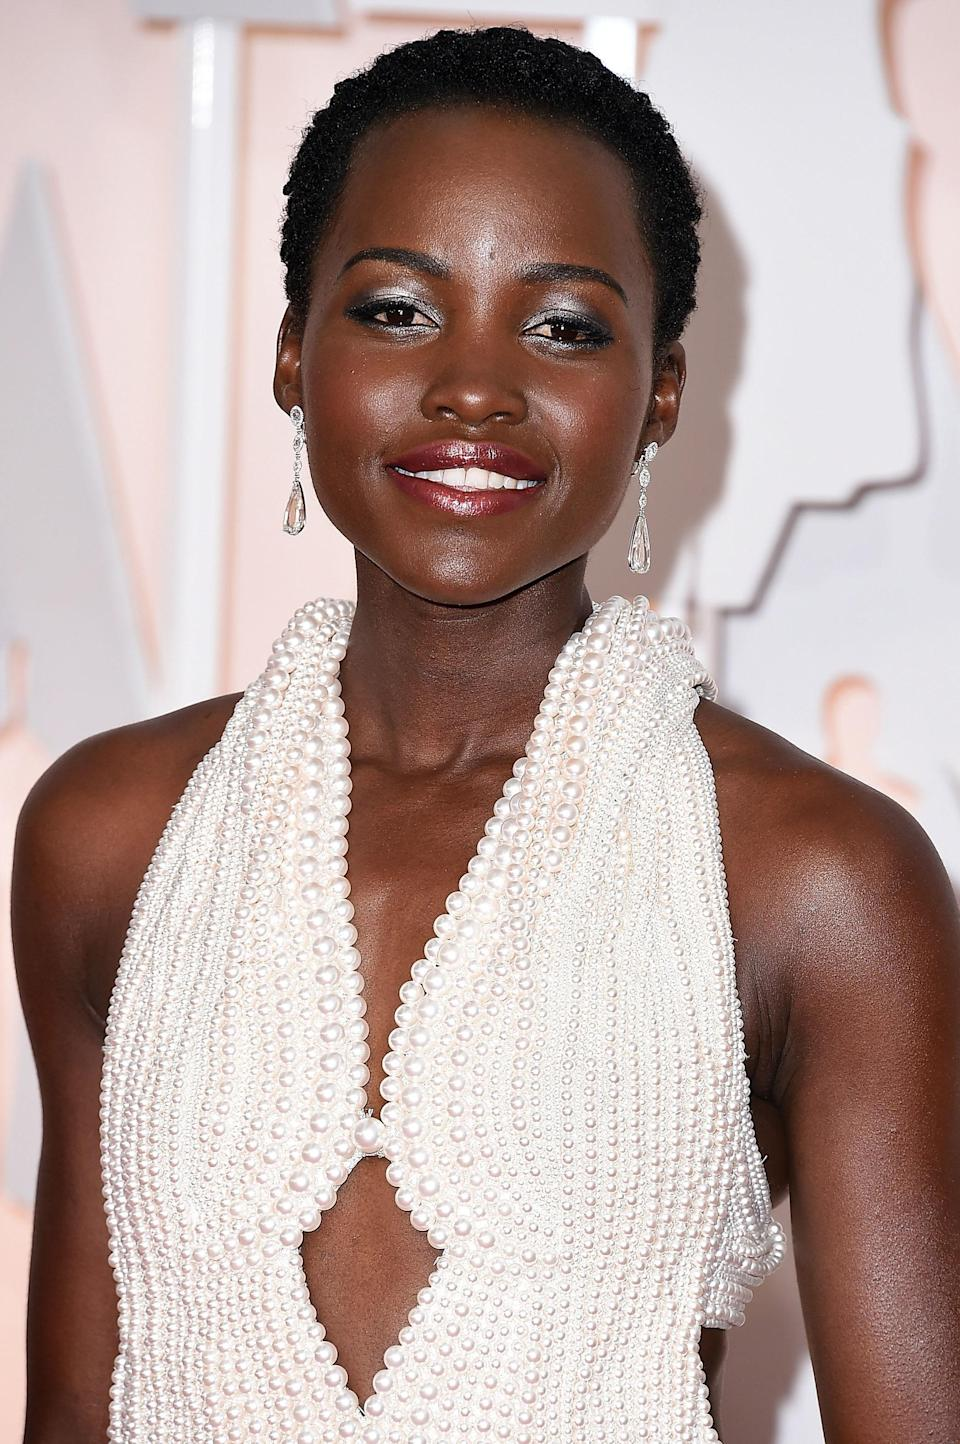 Fabulous jewelry isn't limited to rings and necklaces—for her trip to the 2015 Oscars, Lupita Nyong'o delighted in a pearl-encrusted custom Calvin Klein gown that took the concept from head to toe.